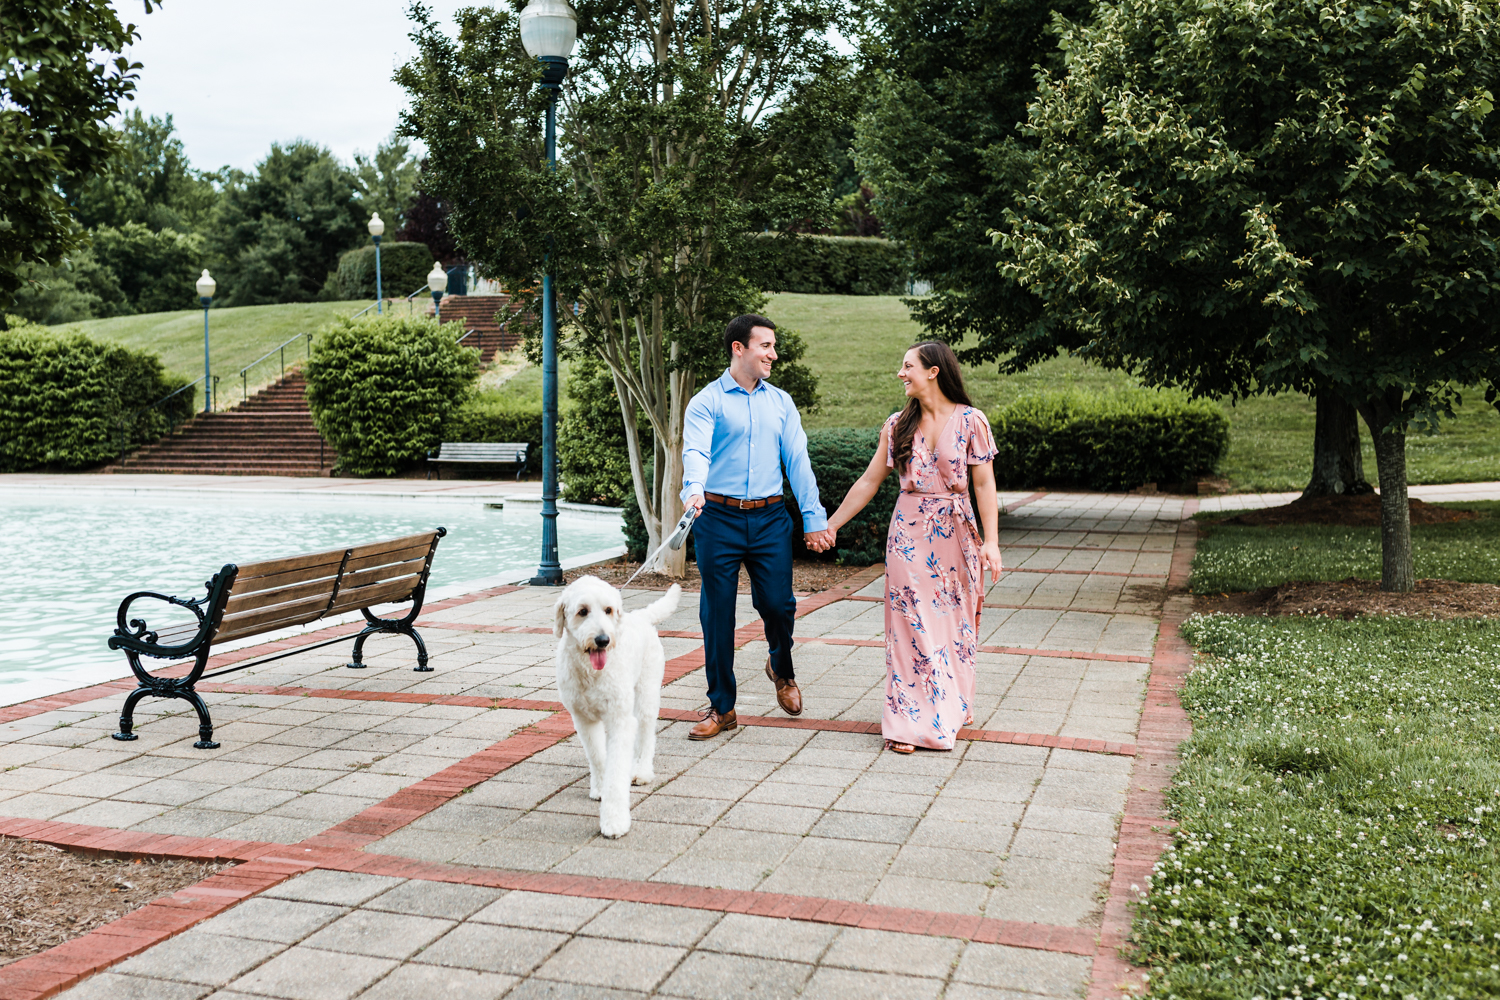 Bride and Groom with their goldendoodle, Teddy, at their engagement session - top rated wedding photographer in Maryland near Annapolis